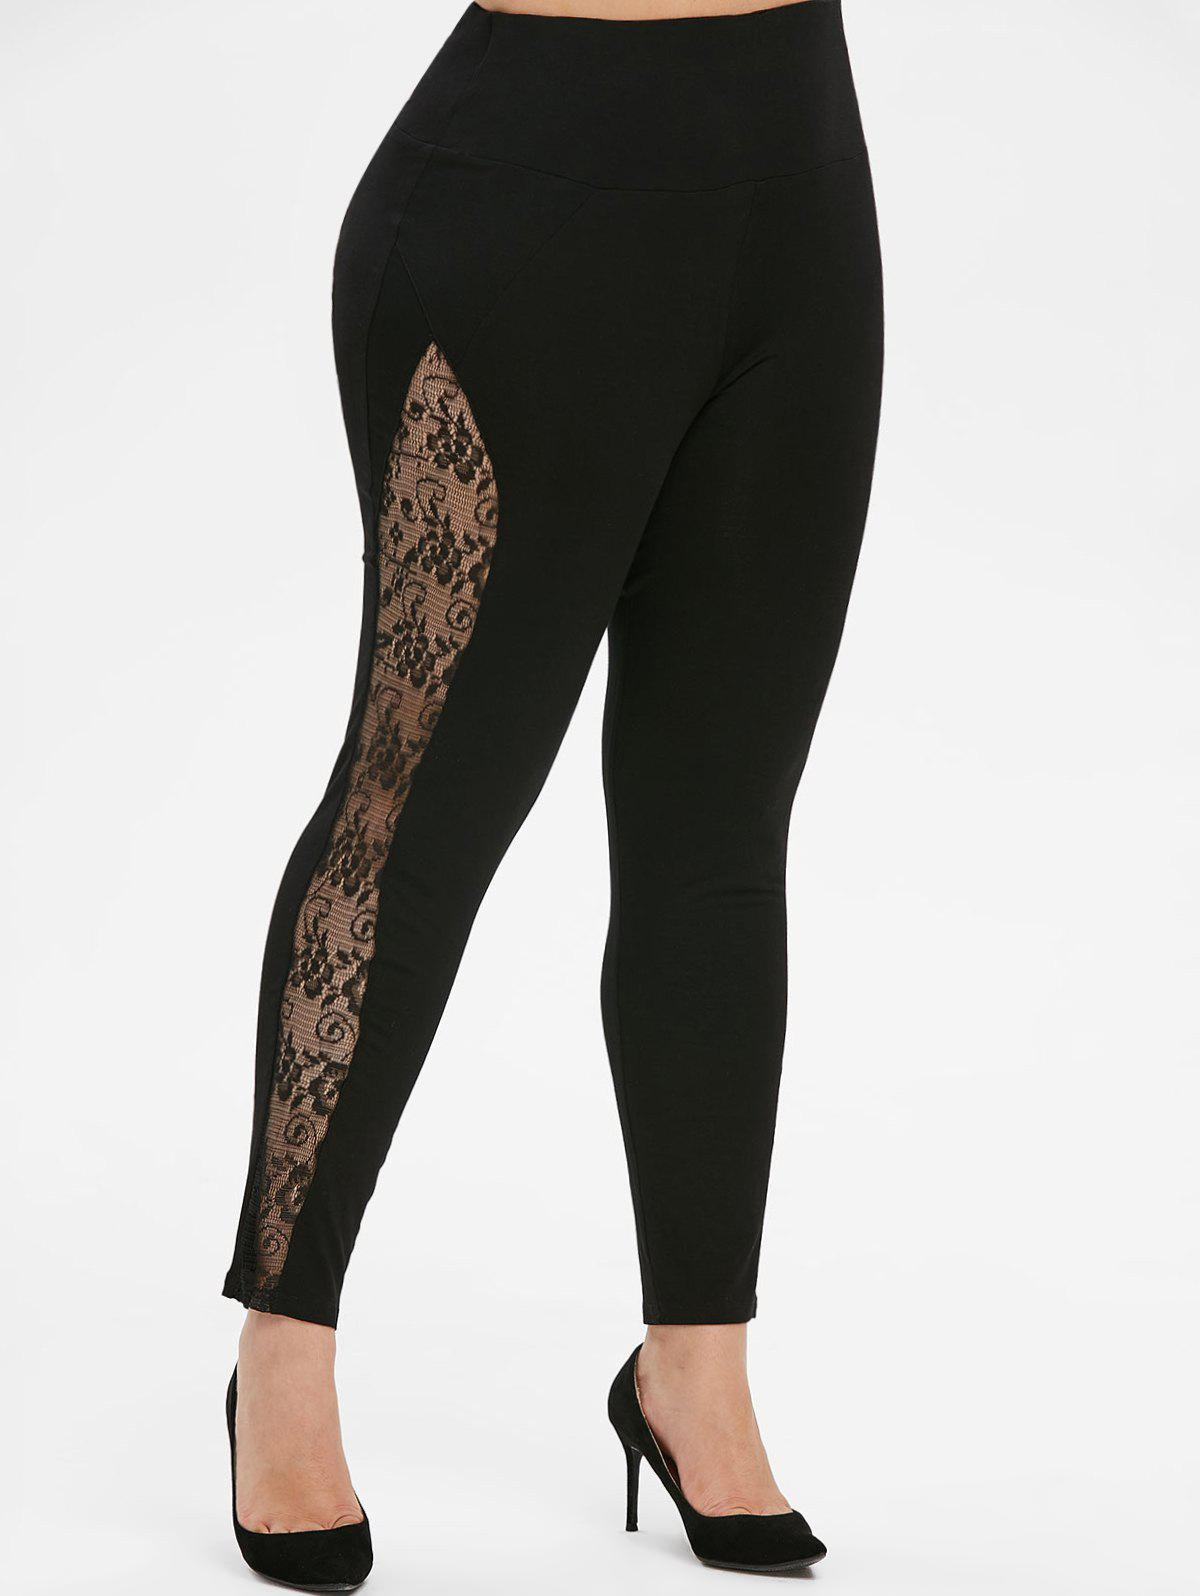 Pull On Lace Panel High Waisted Plus Size Leggings - BLACK 5X